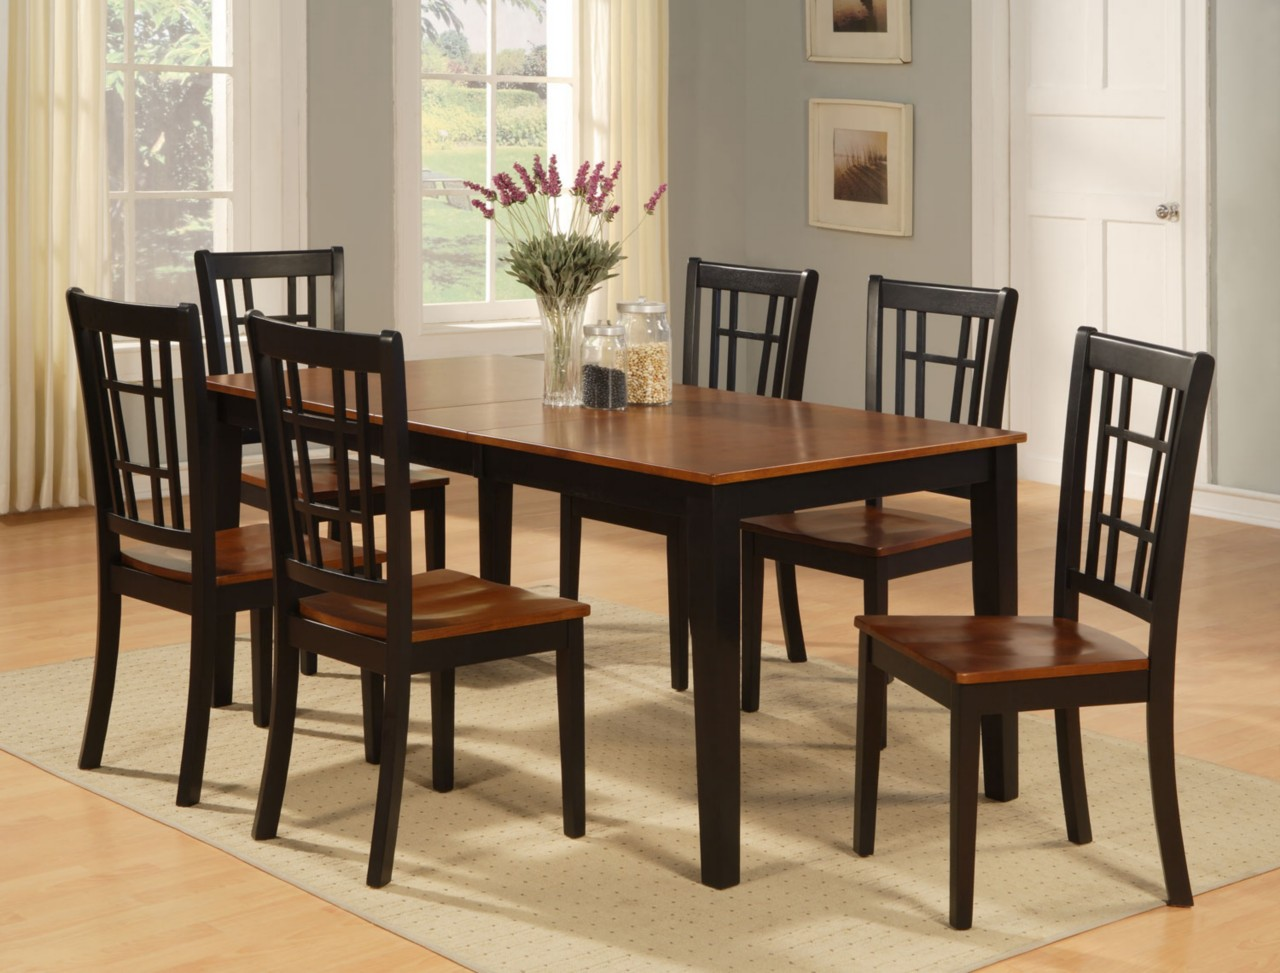 Dinette kitchen dining room set 7pc table and 6 chairs ebay for Kitchen dining table chairs